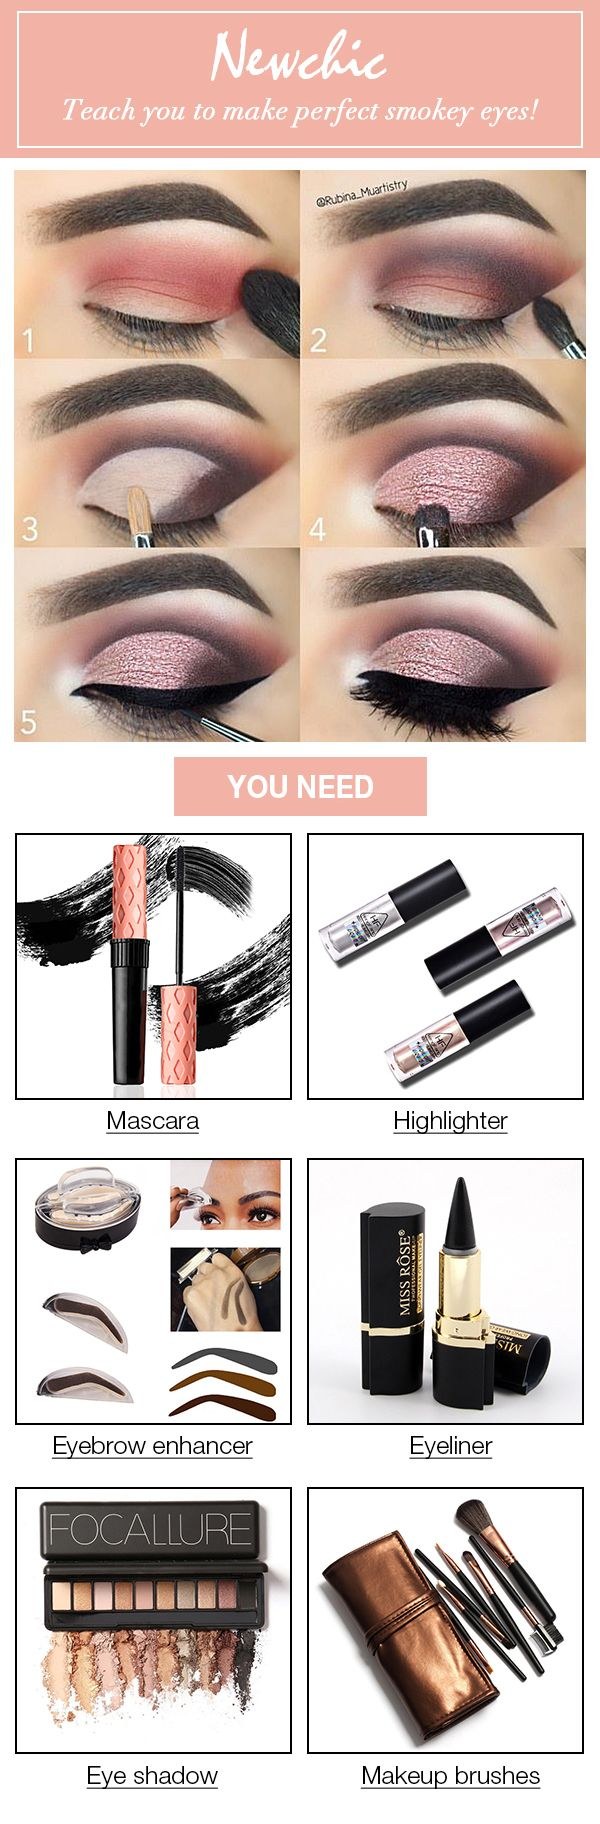 Newchic teaches you to make perfect smokey eyes! Giving you a super sexy look!